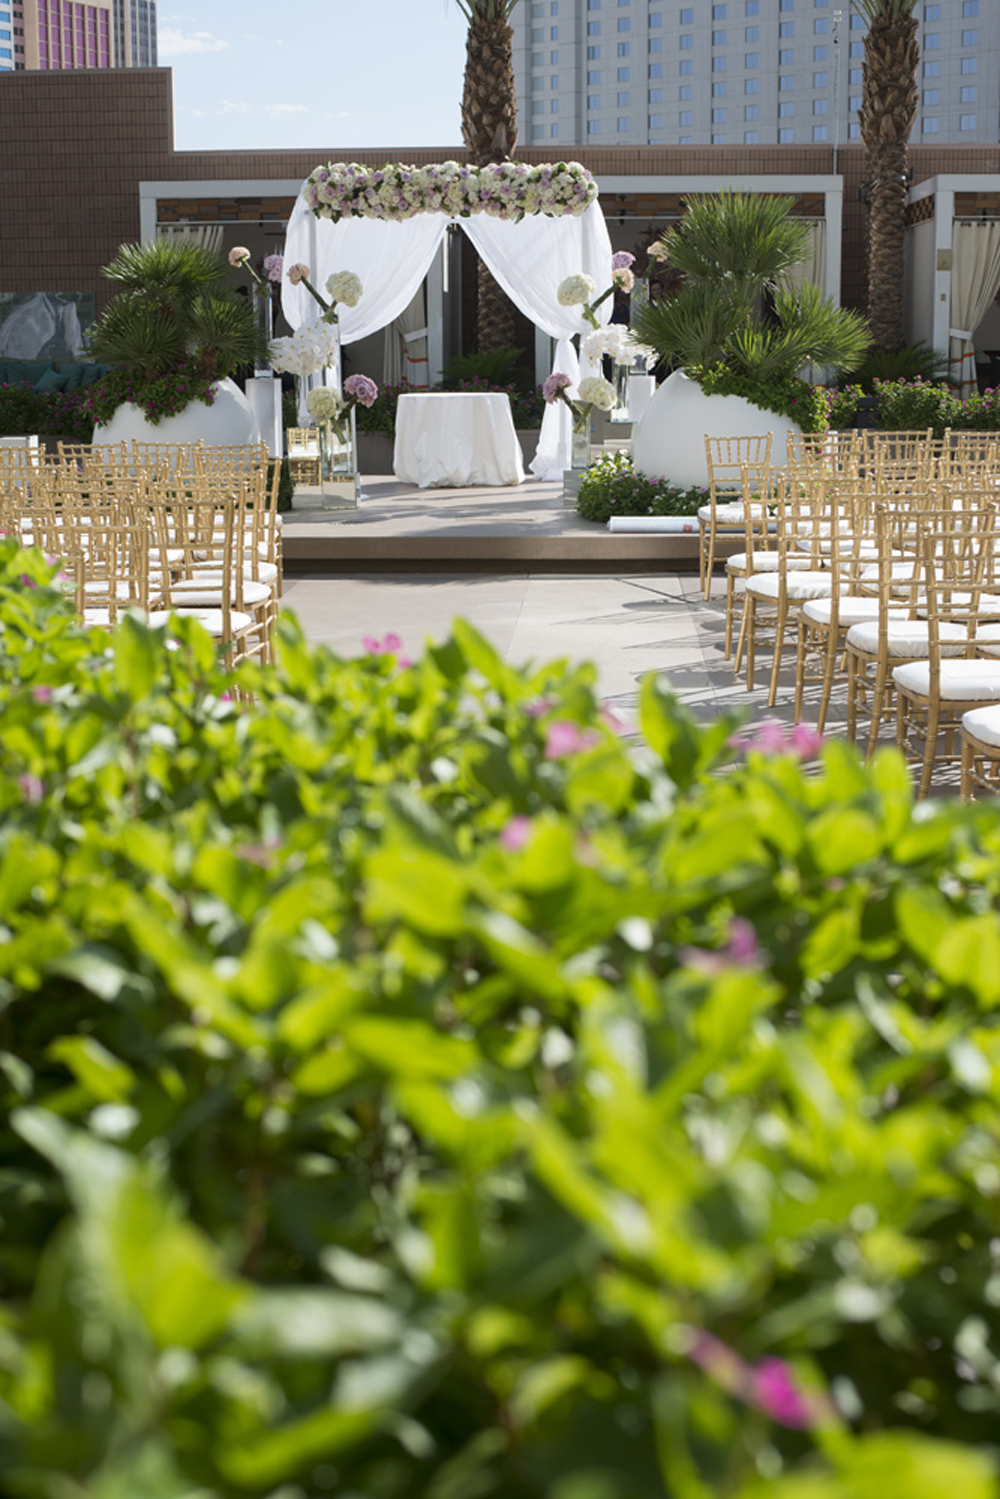 With the cabanas in the background, guests entered to find gold chiavari chairs lining the side of the pool deck.   Las Vegas Wedding at   Mandarin Oriental   |  Photo by  Altf Photography   |  Floral and Decor by  Naakiti Floral   |  Las Vegas Wedding Planner  Andrea Eppolito